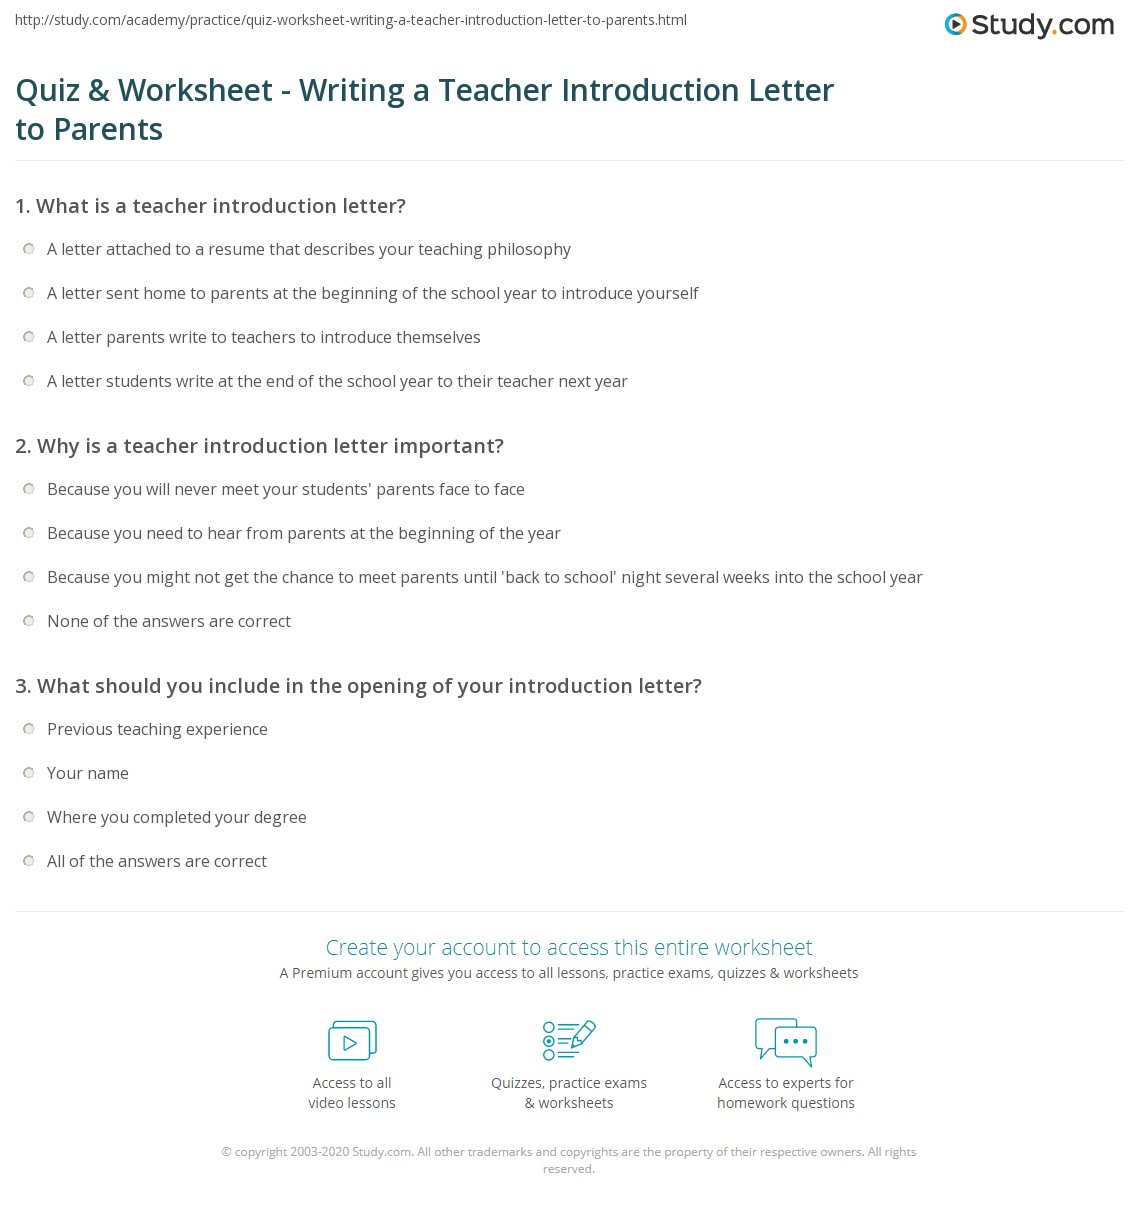 Quiz & Worksheet Writing a Teacher Introduction Letter to